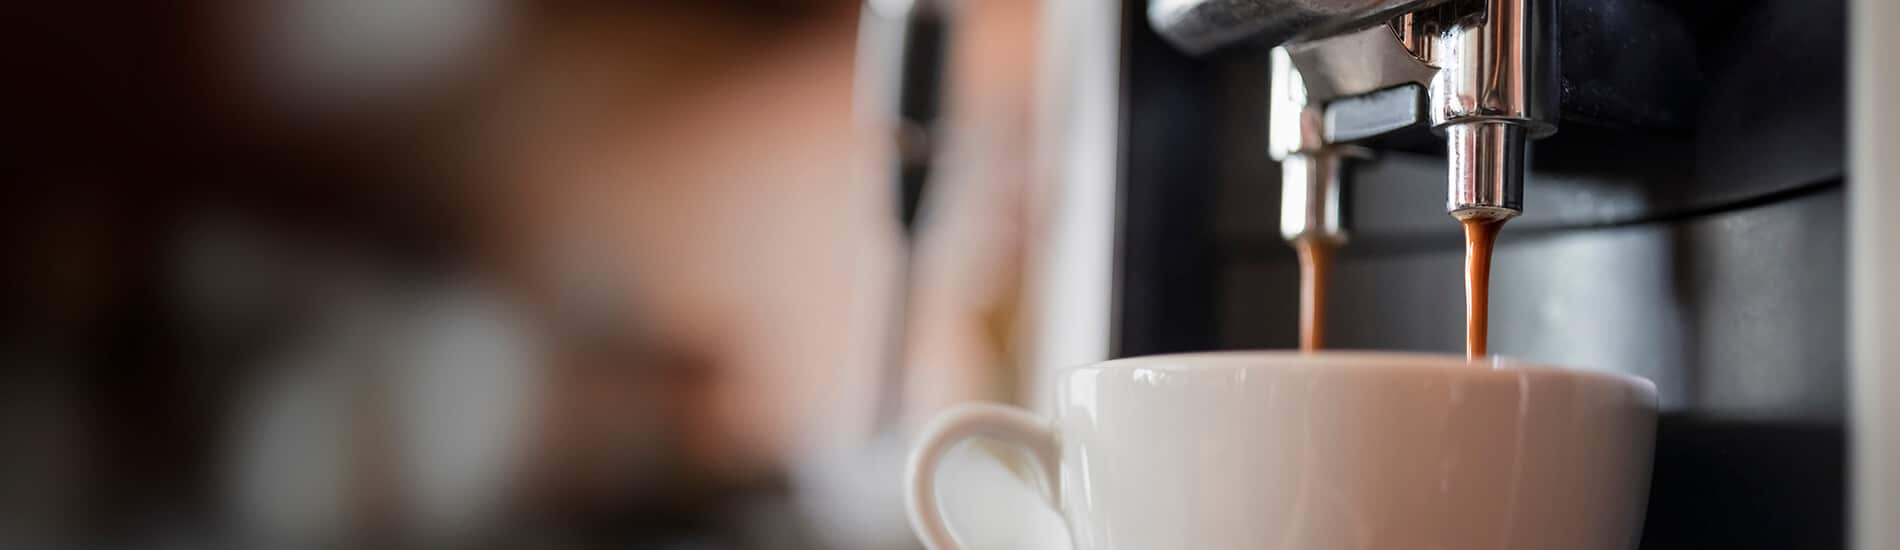 How To Find The Best Coffee Machine For The Office